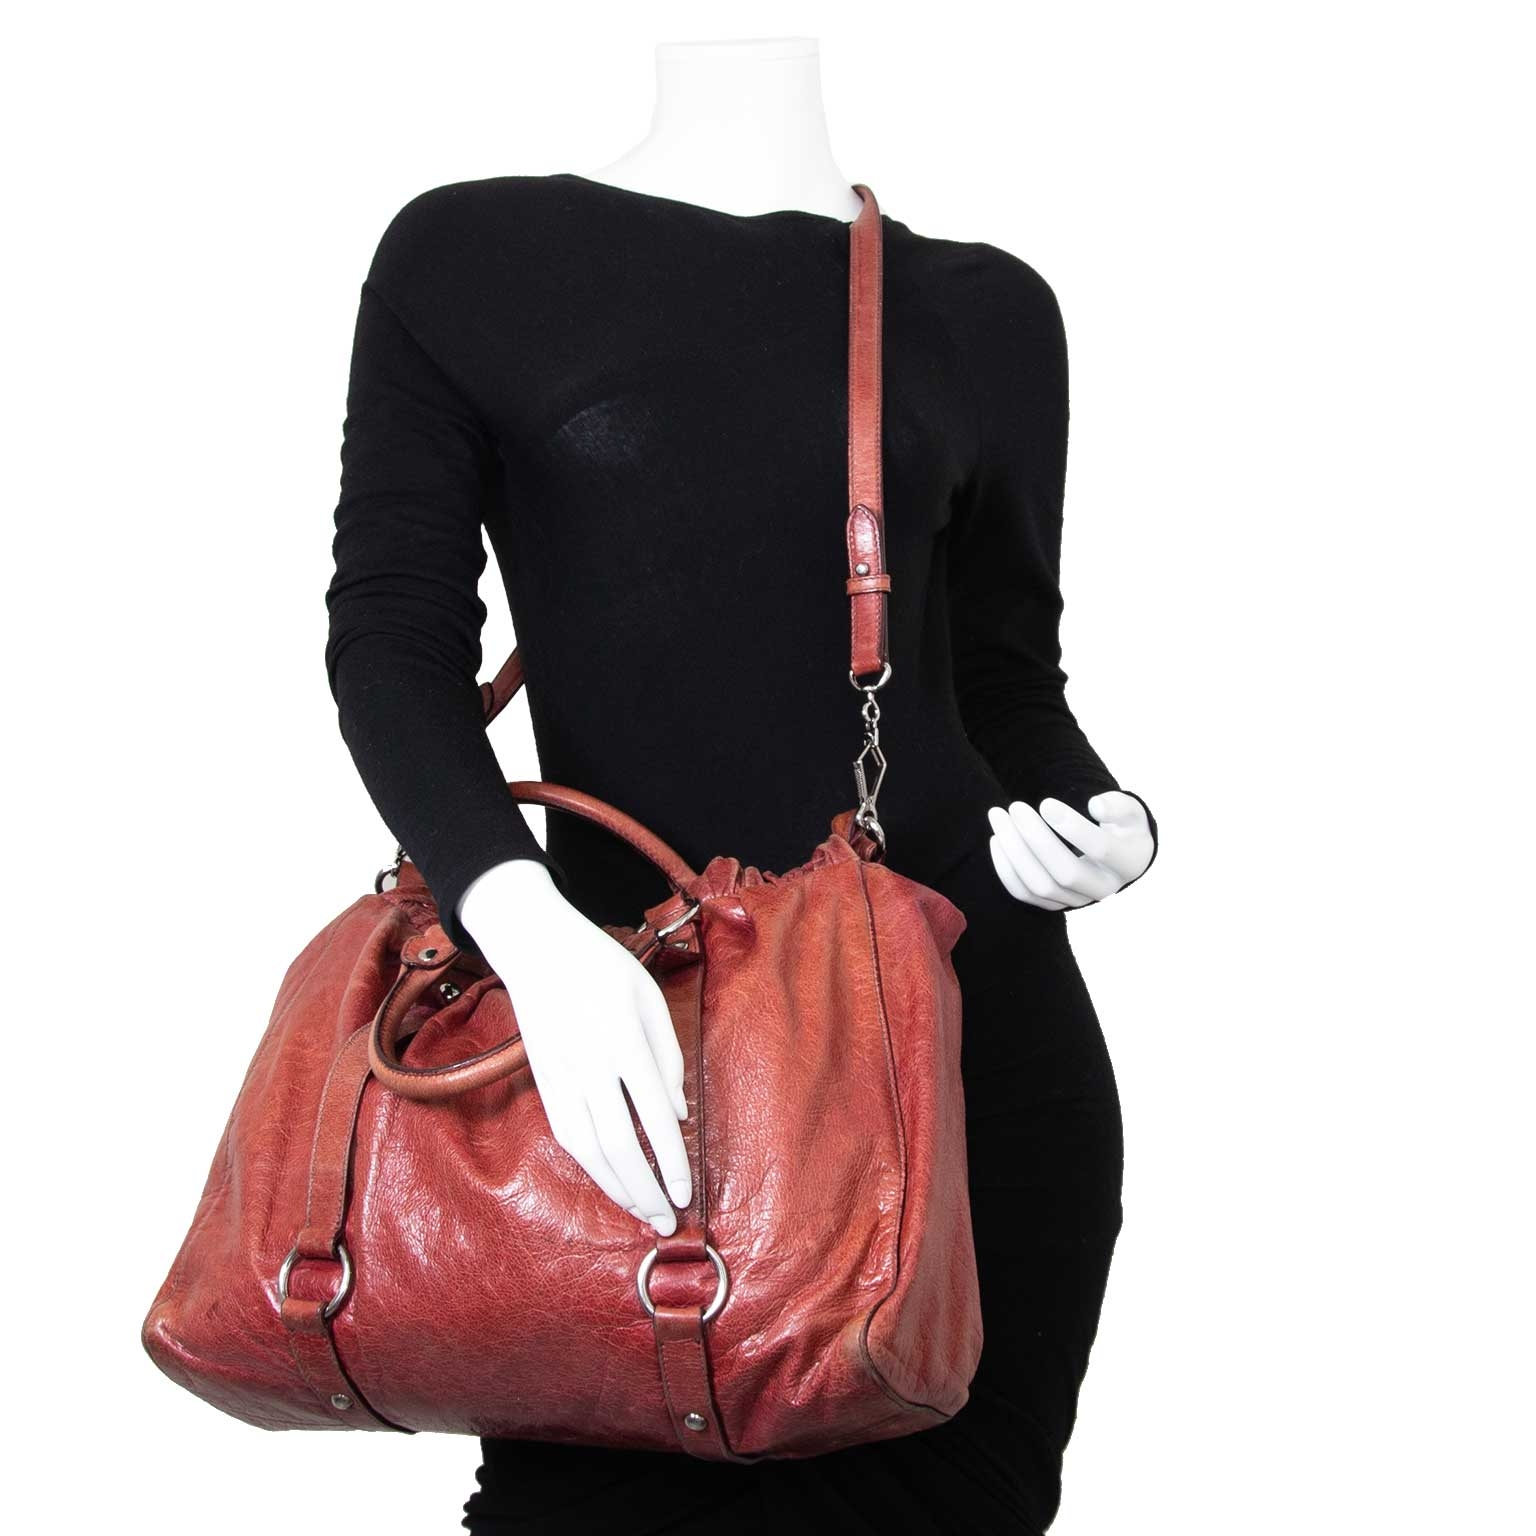 miu miu vitello lux gathered leather shopper now for sale at labellov vintage fashion webshop belgium